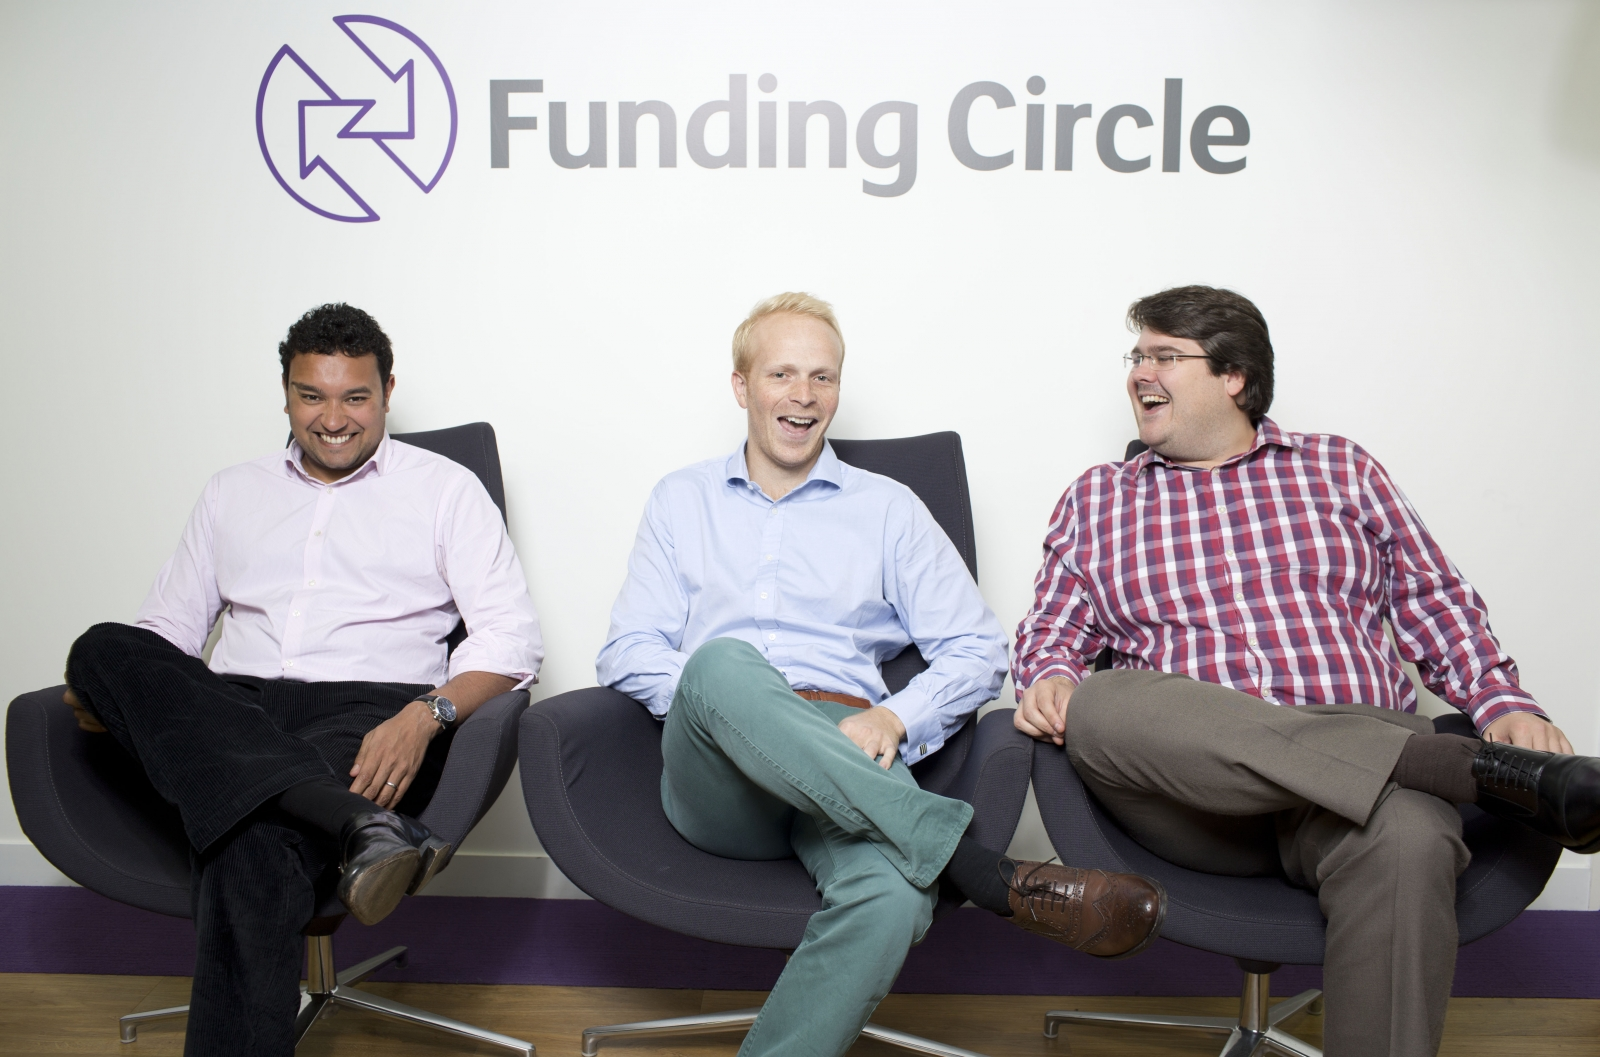 European Investment Bank to lend £100m to small British businesses via Funding Circle